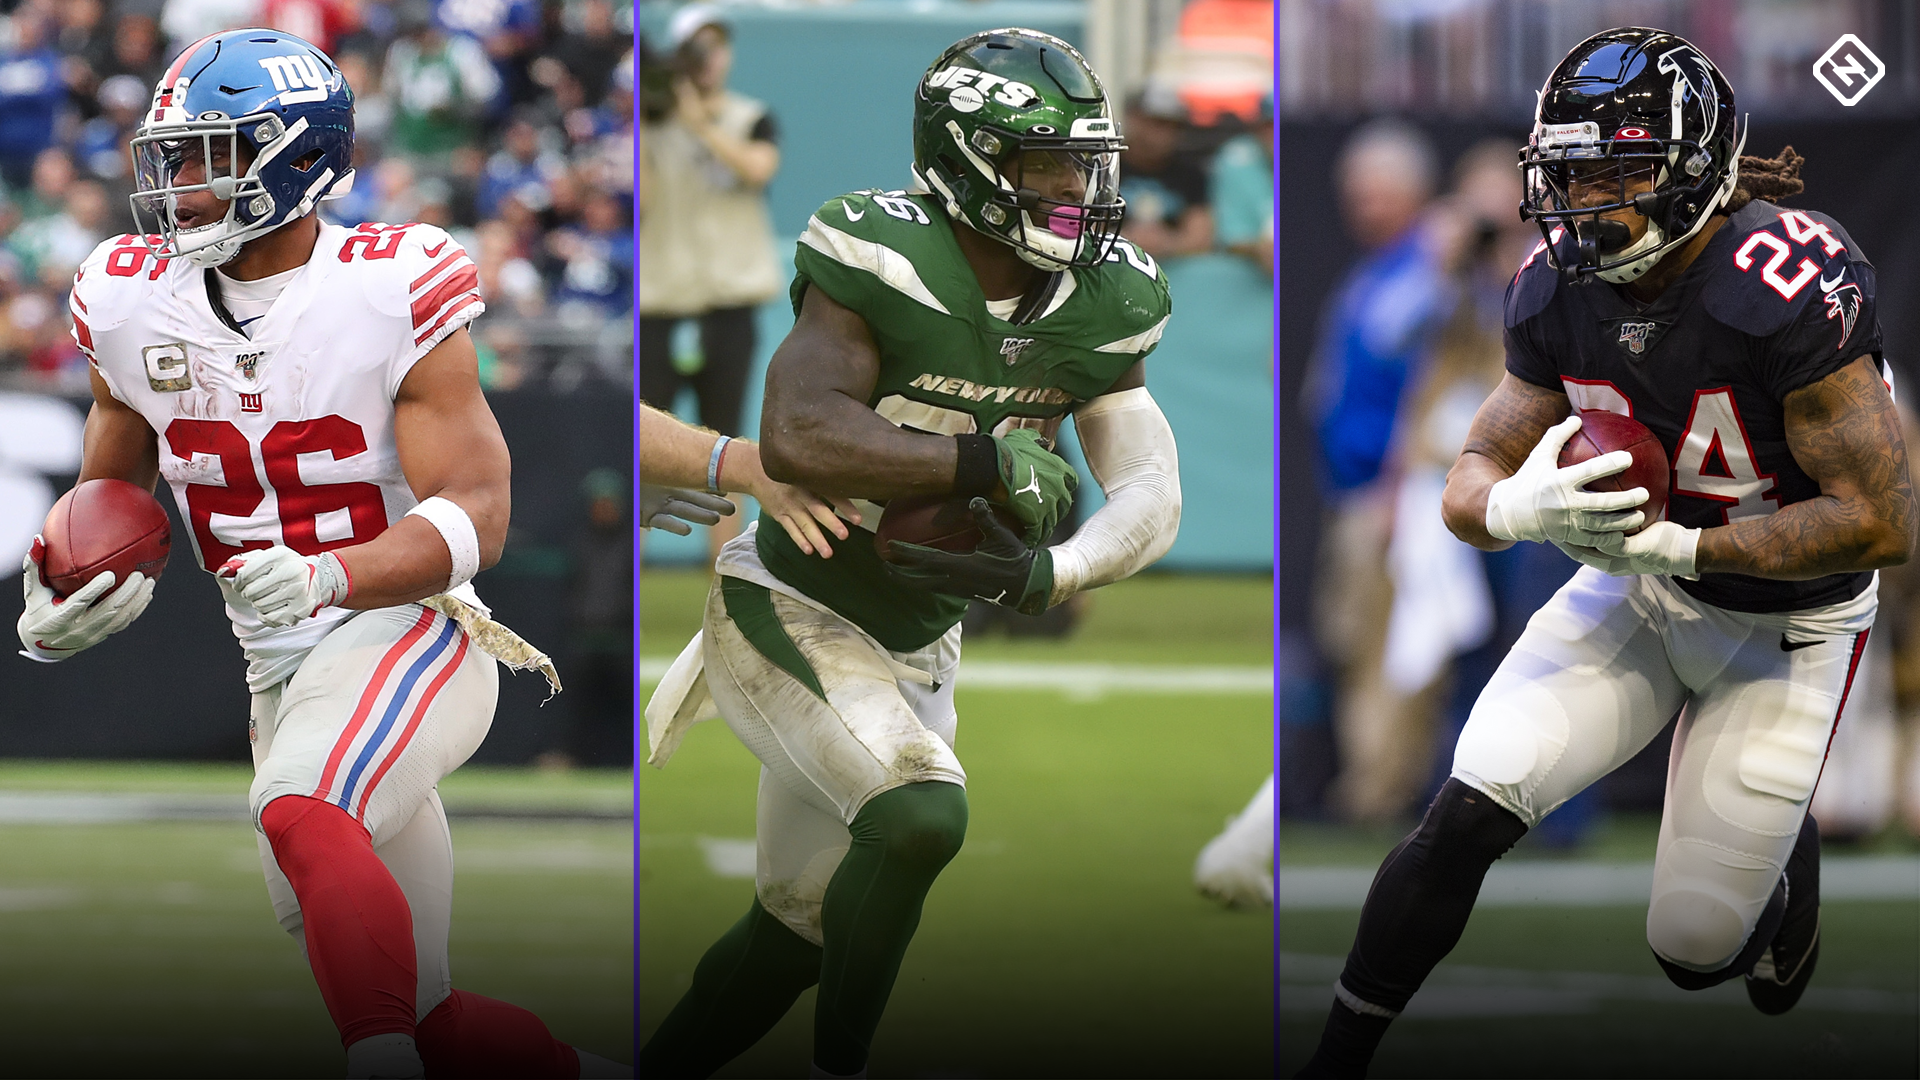 Fantasy Injury Updates: Saquon Barkley, Le'Veon Bell, Devonta Freeman affect Week 11 waiver wire pickups